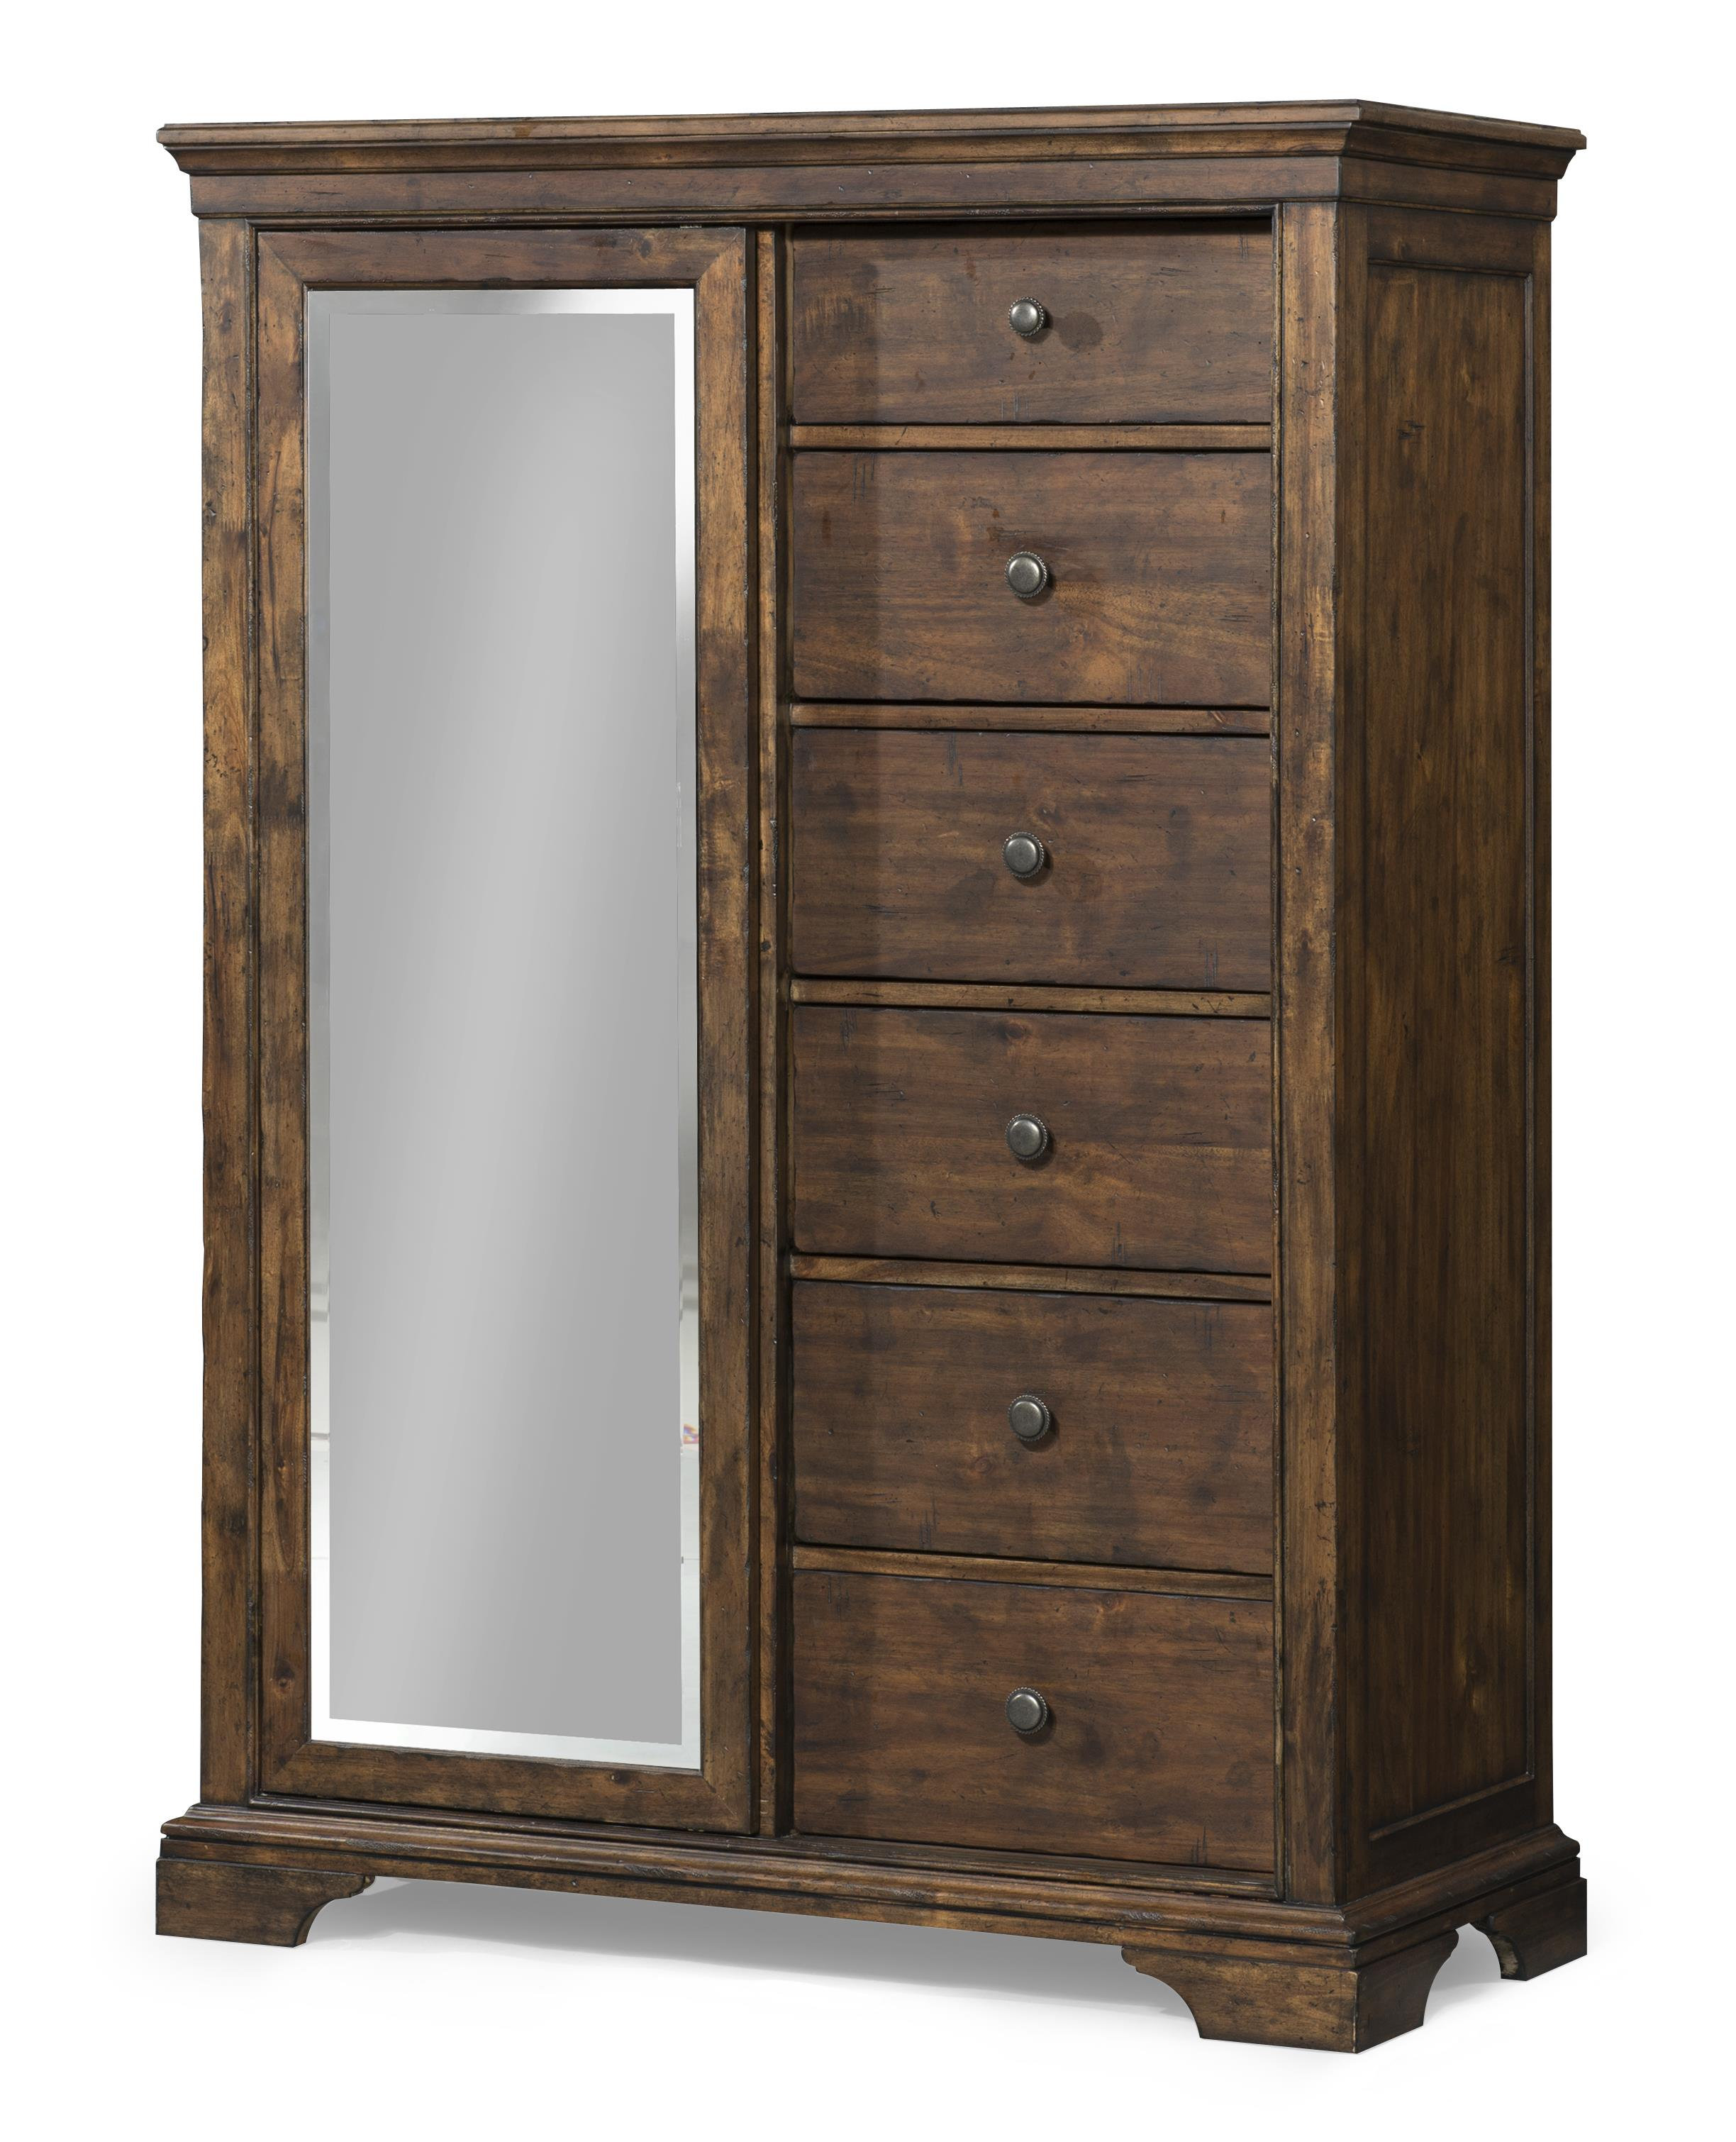 Trisha Yearwood Home Trisha Yearwood Home Tulsa Sliding Door Chest With Mirror Belfort Furniture Door Chests